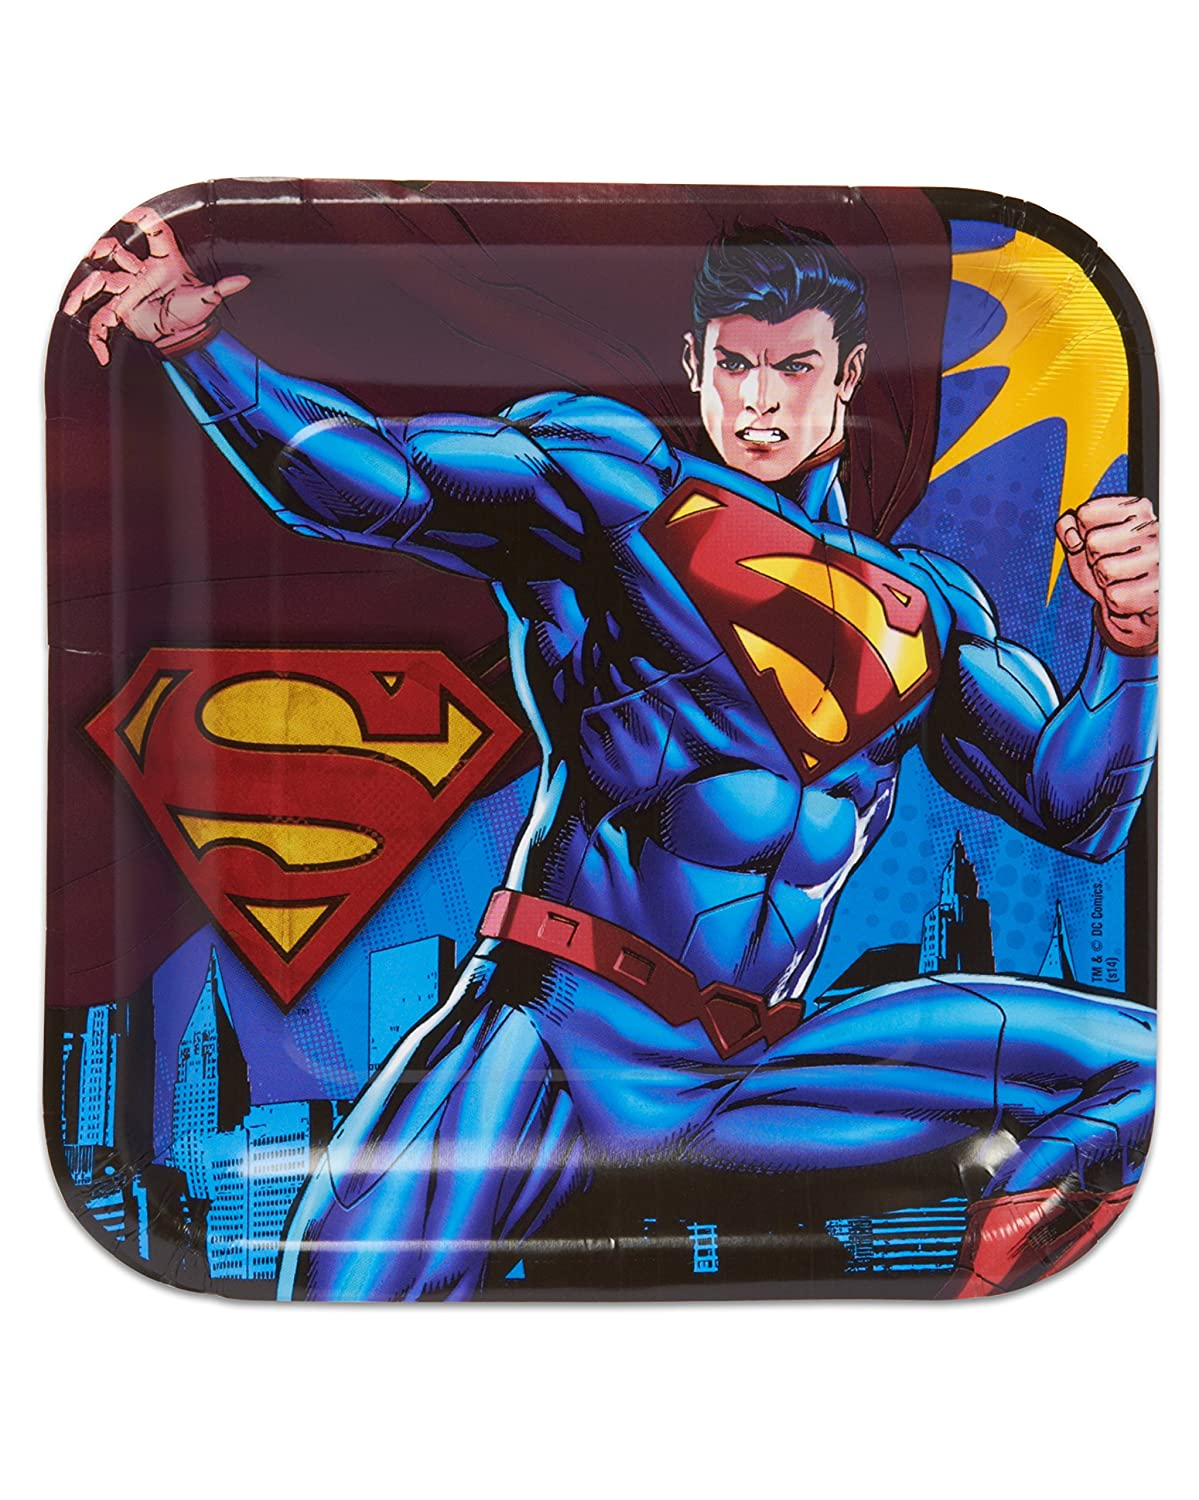 Amazon.com: american greetings Superman 9